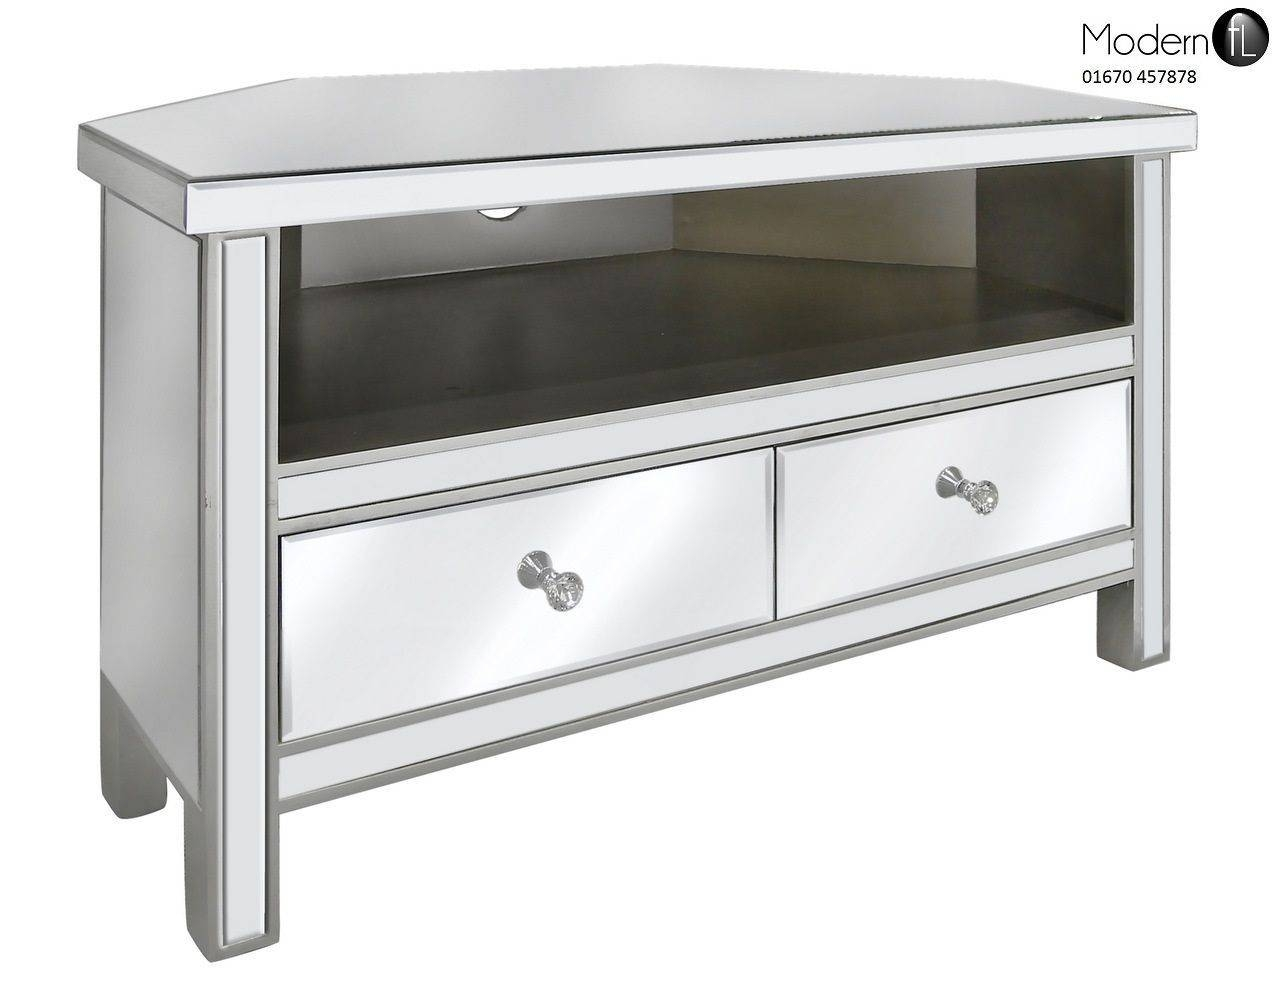 Venetian Mirrored Corner Tv Stand Mirrored Corner Tv Cabinet With throughout Silver Corner Tv Stands (Image 15 of 15)